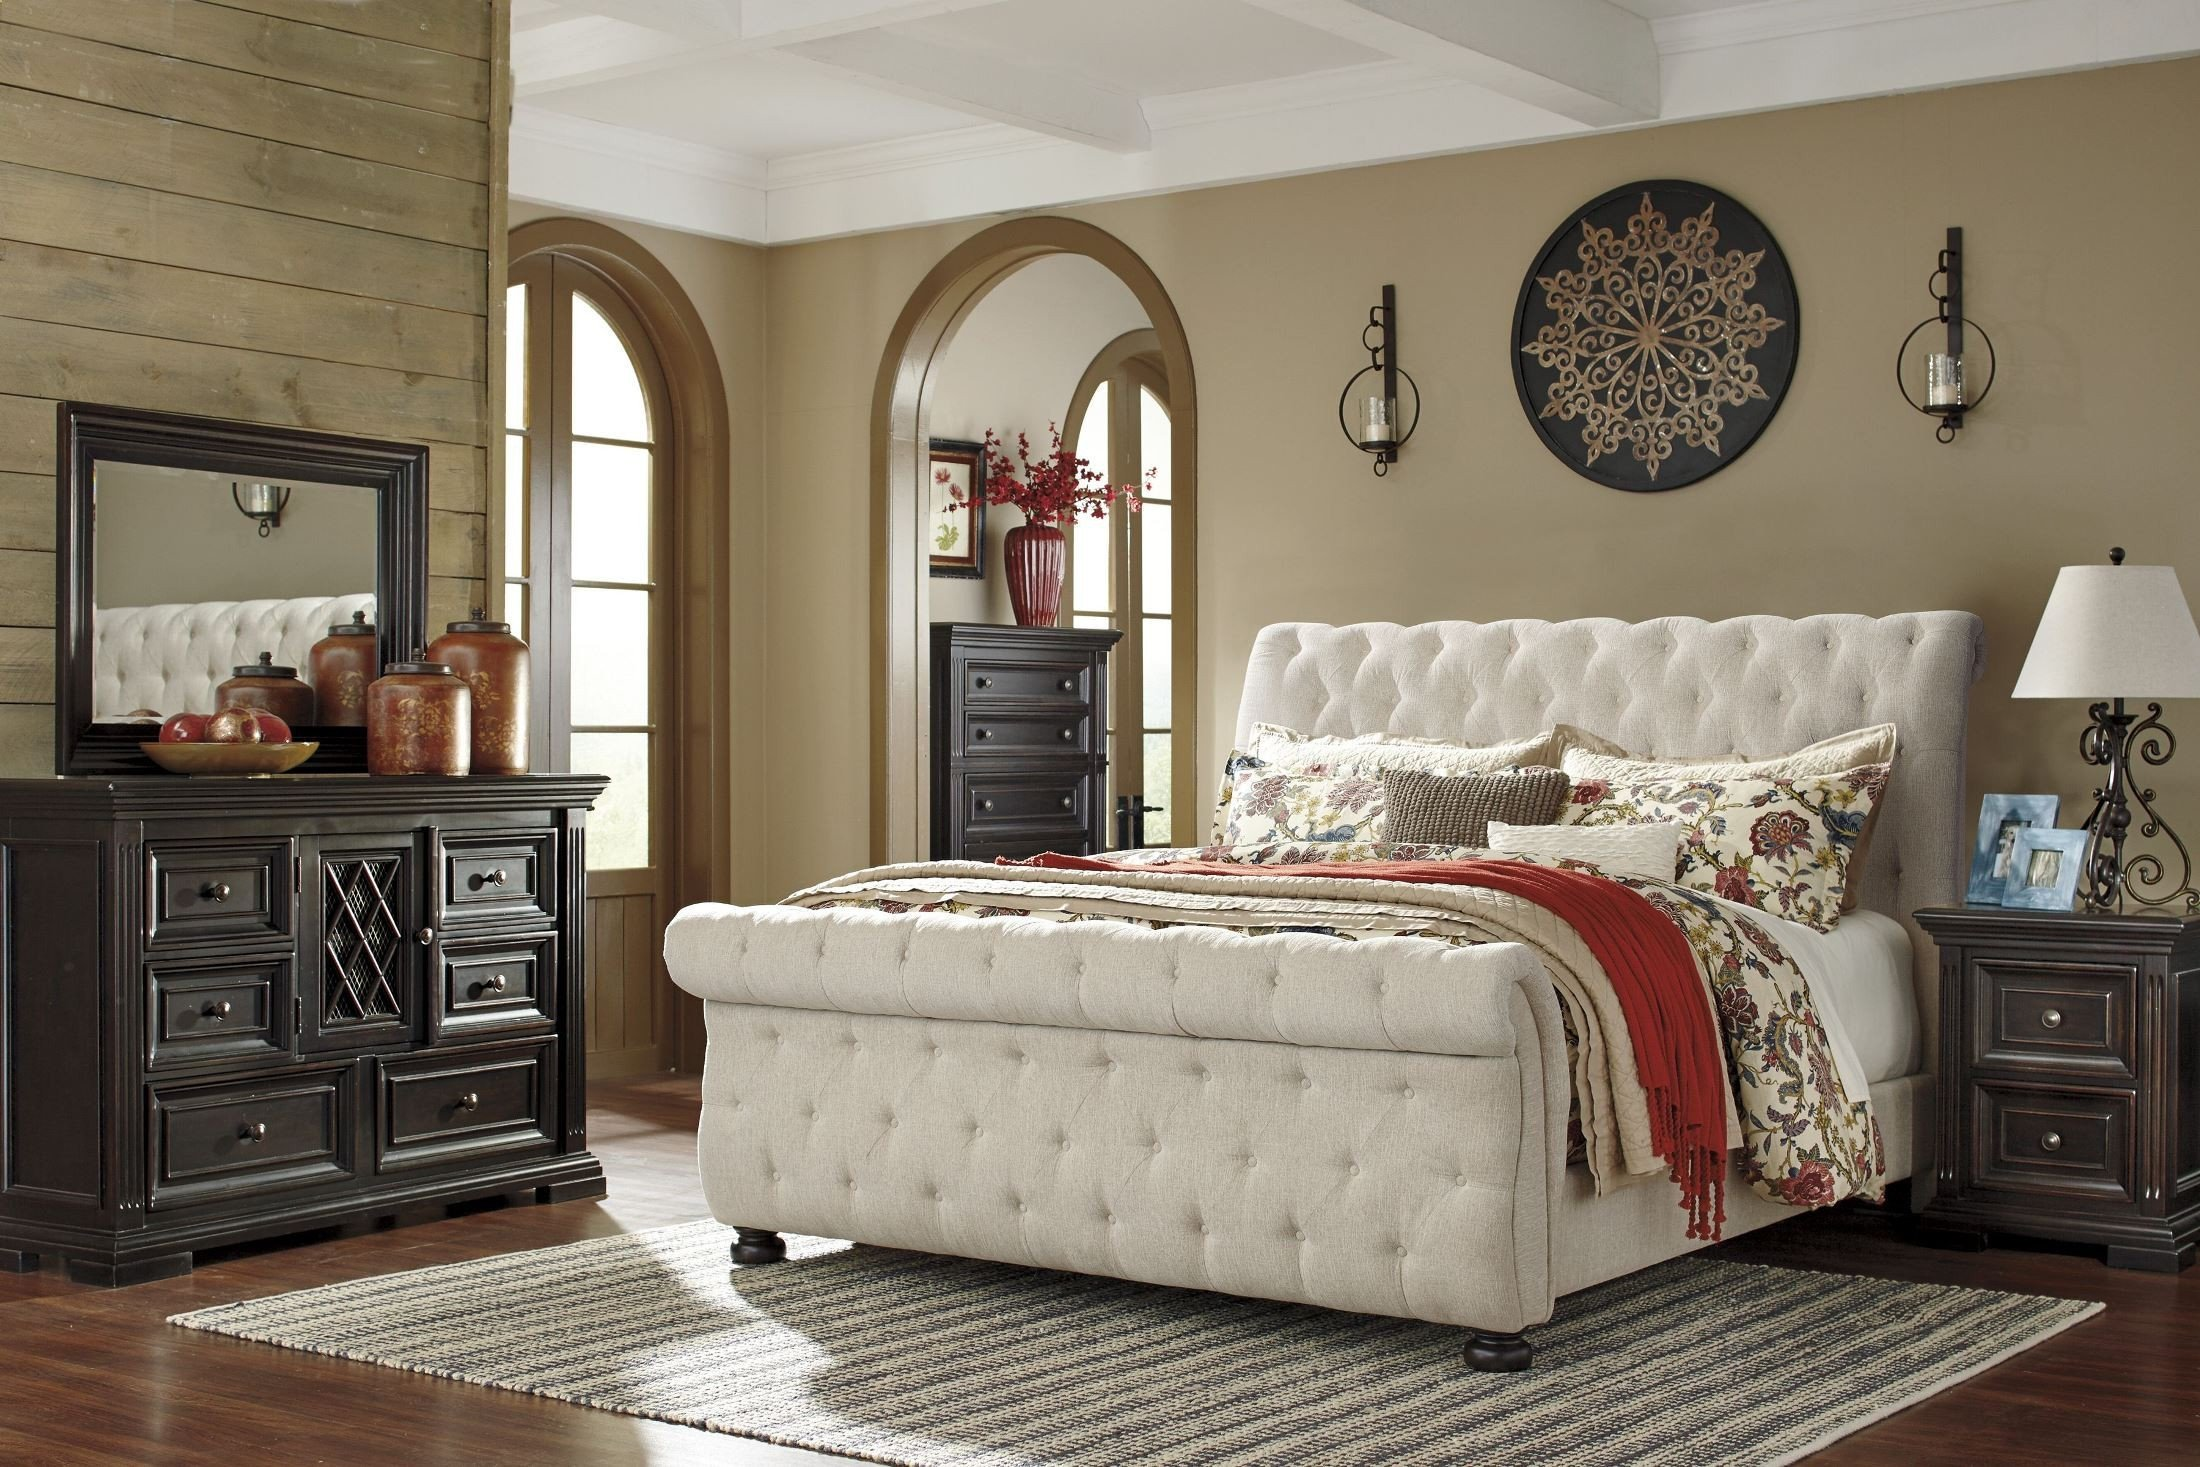 Ashley Porter Bedroom Set Awesome Bedroom Royal Queen Sleigh Bed Frame with Elegant Creative